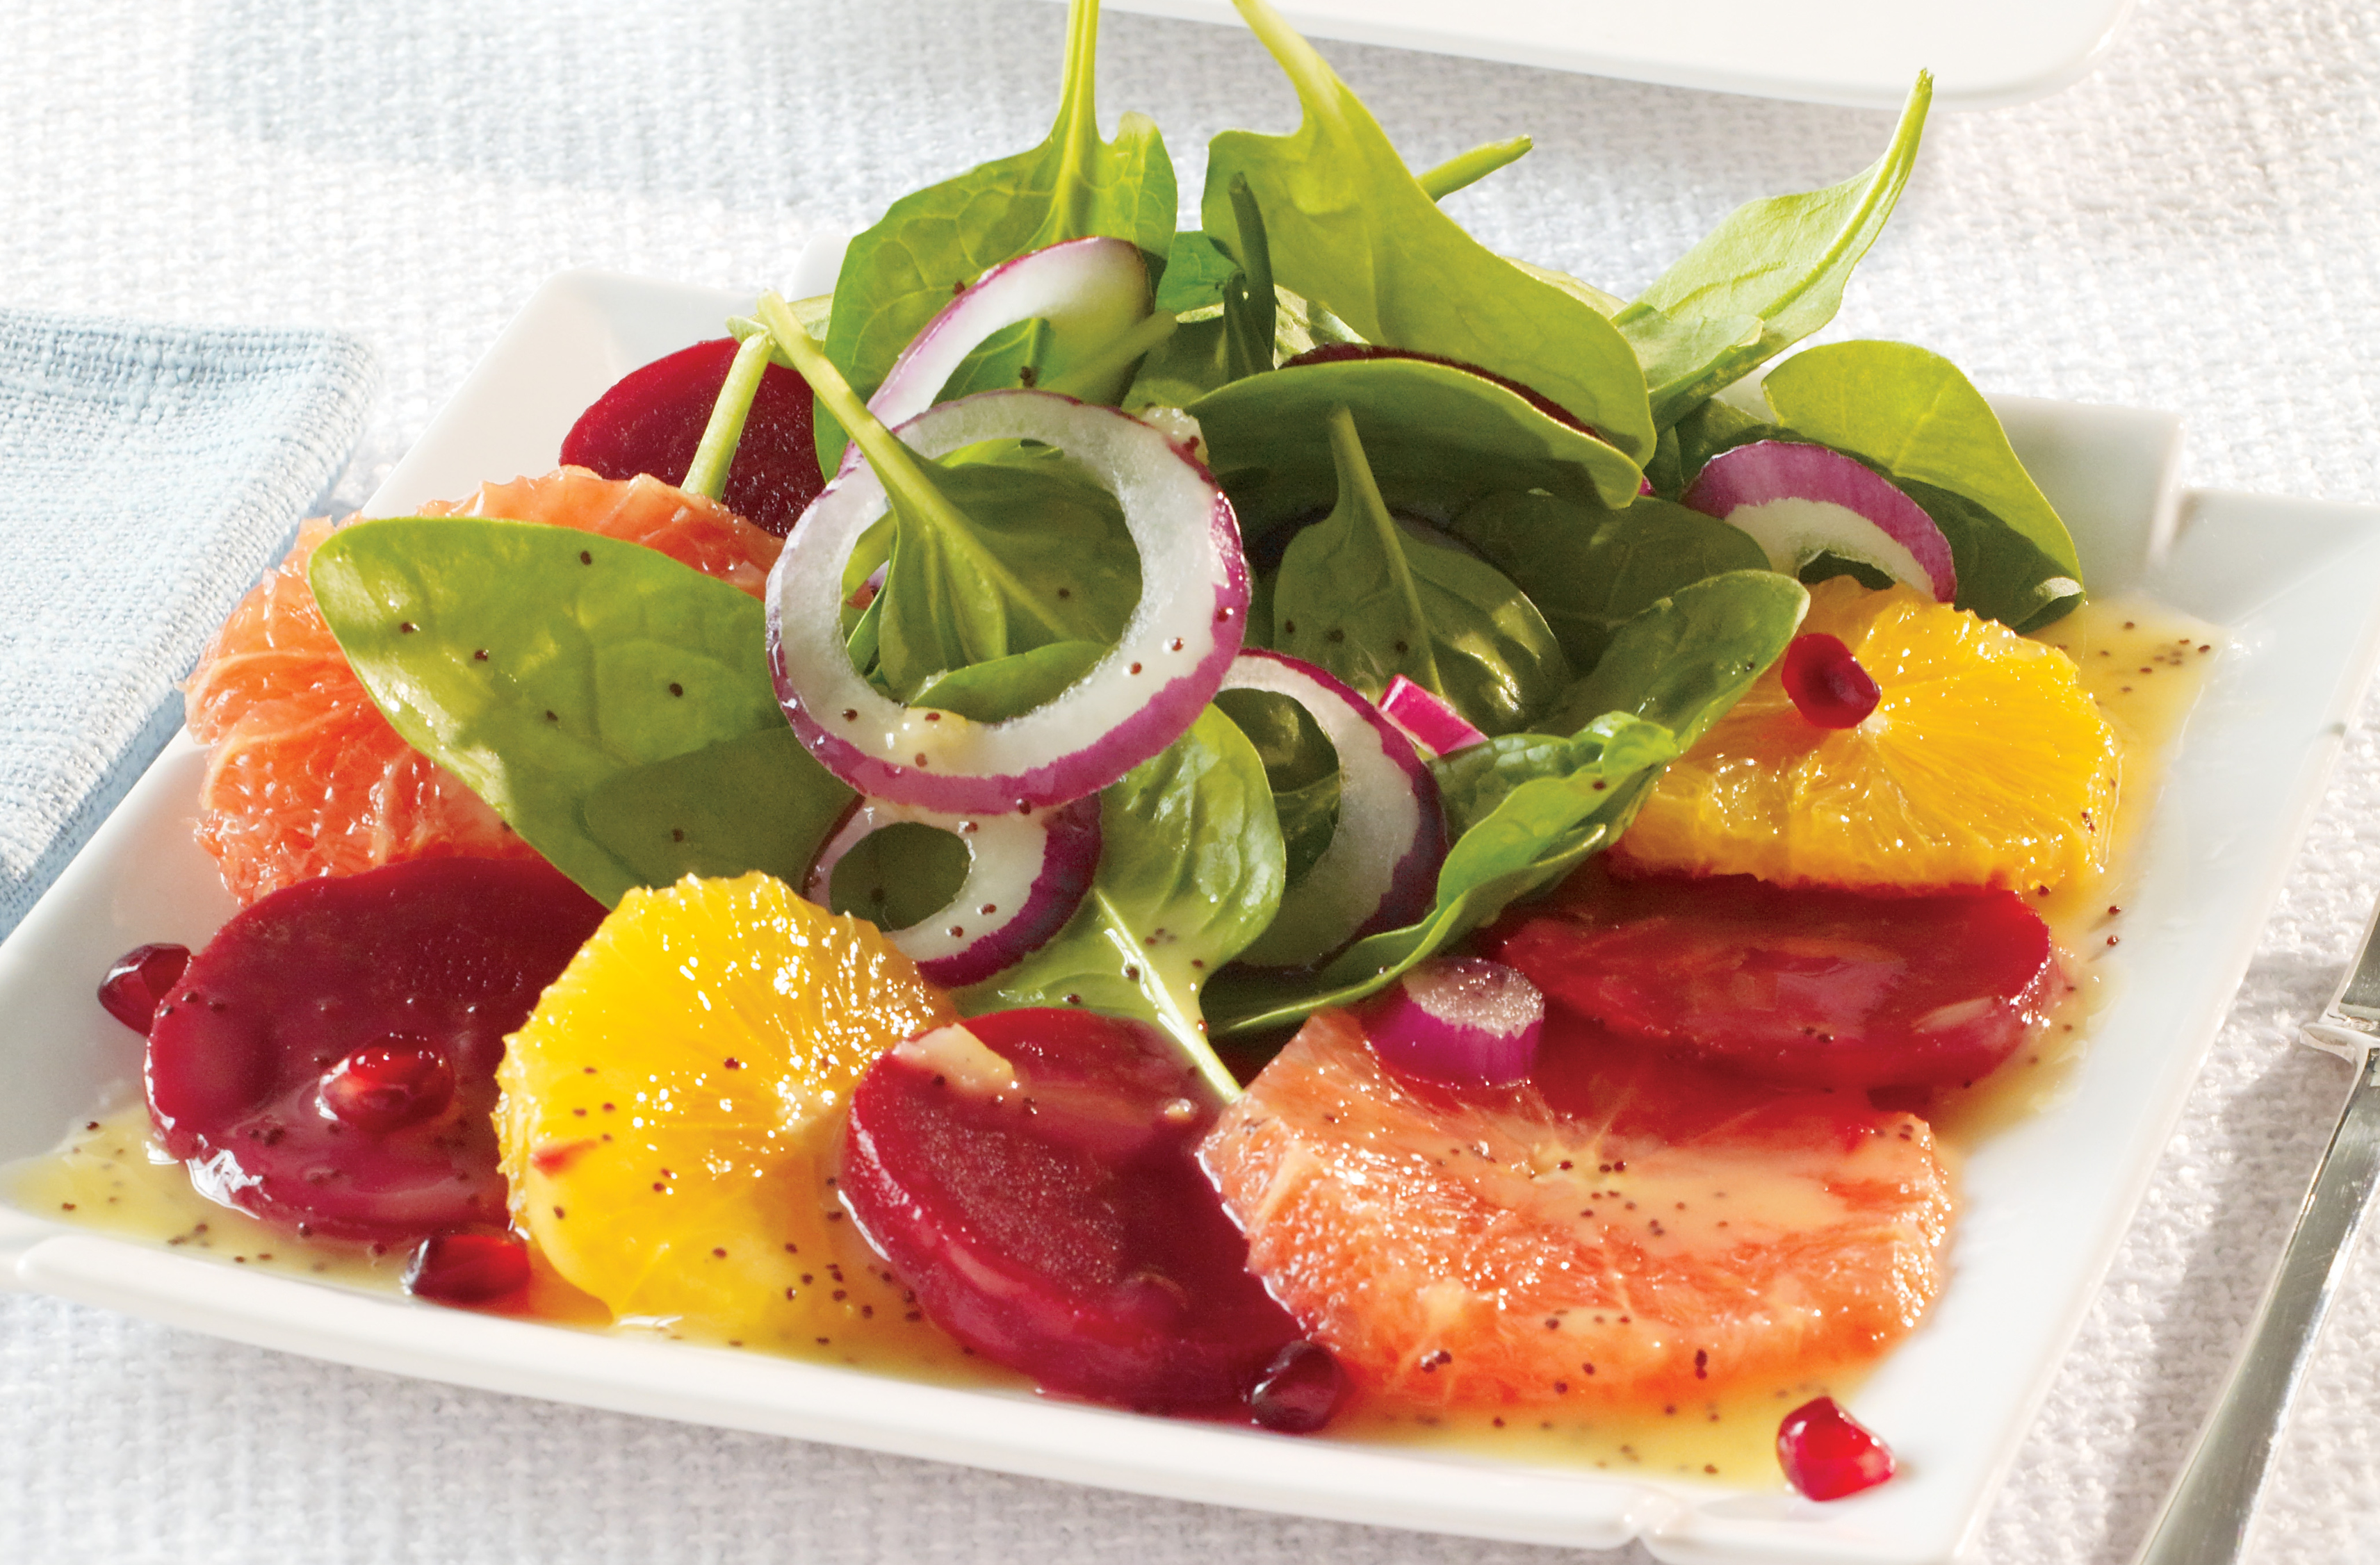 Plate of orange, red grapefruit & beet slices, topped with spinach & onion